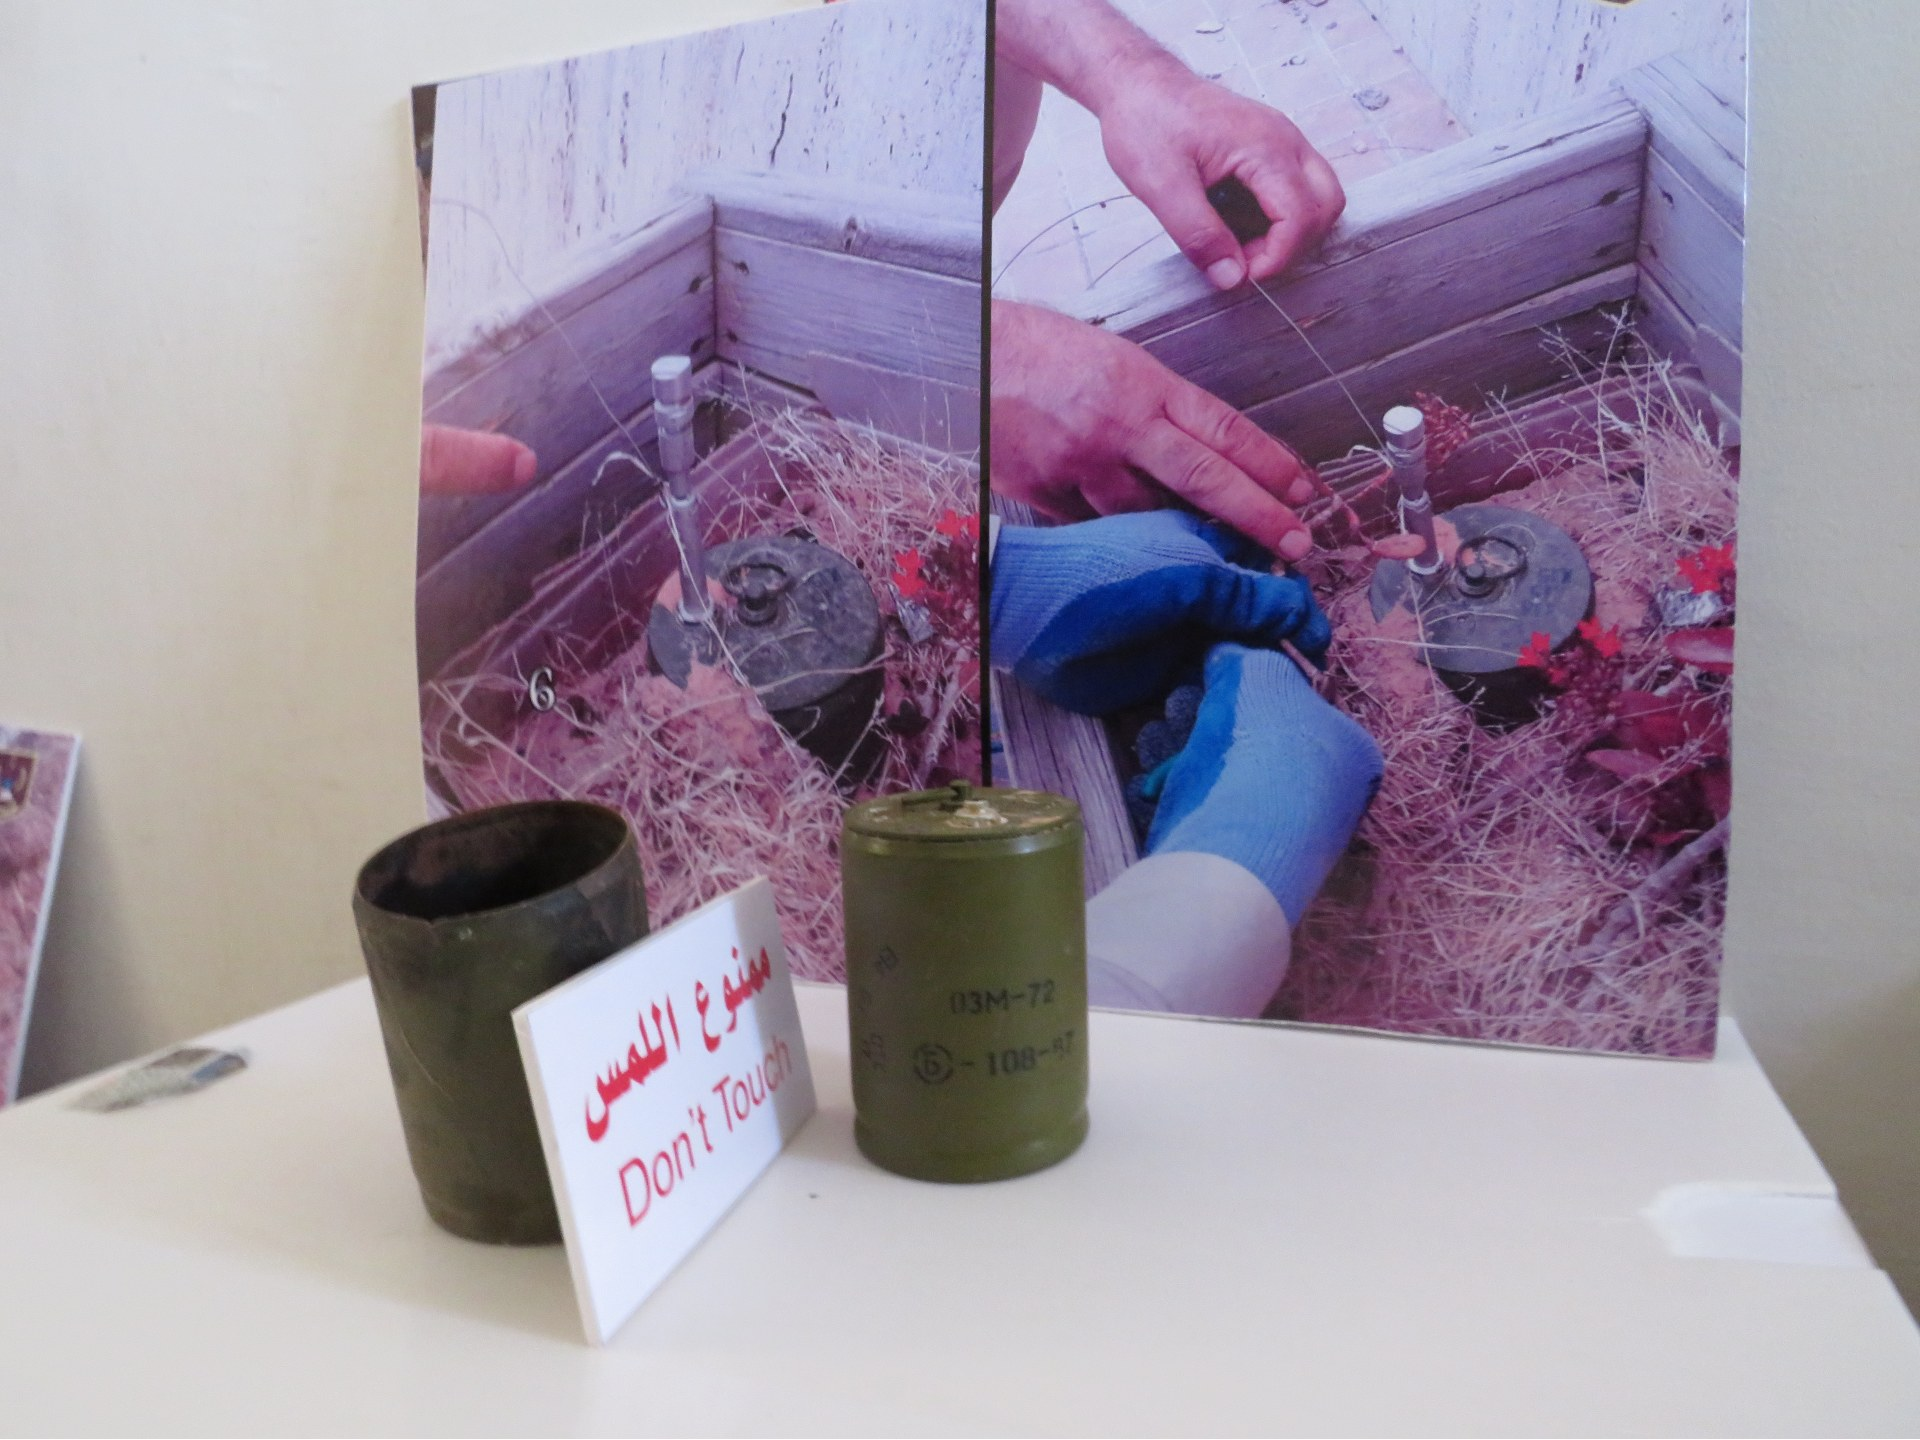 OZM-72 mines in front of photographs of one of their model found in situ in Tripoli (MEE/Daniel Hilton)